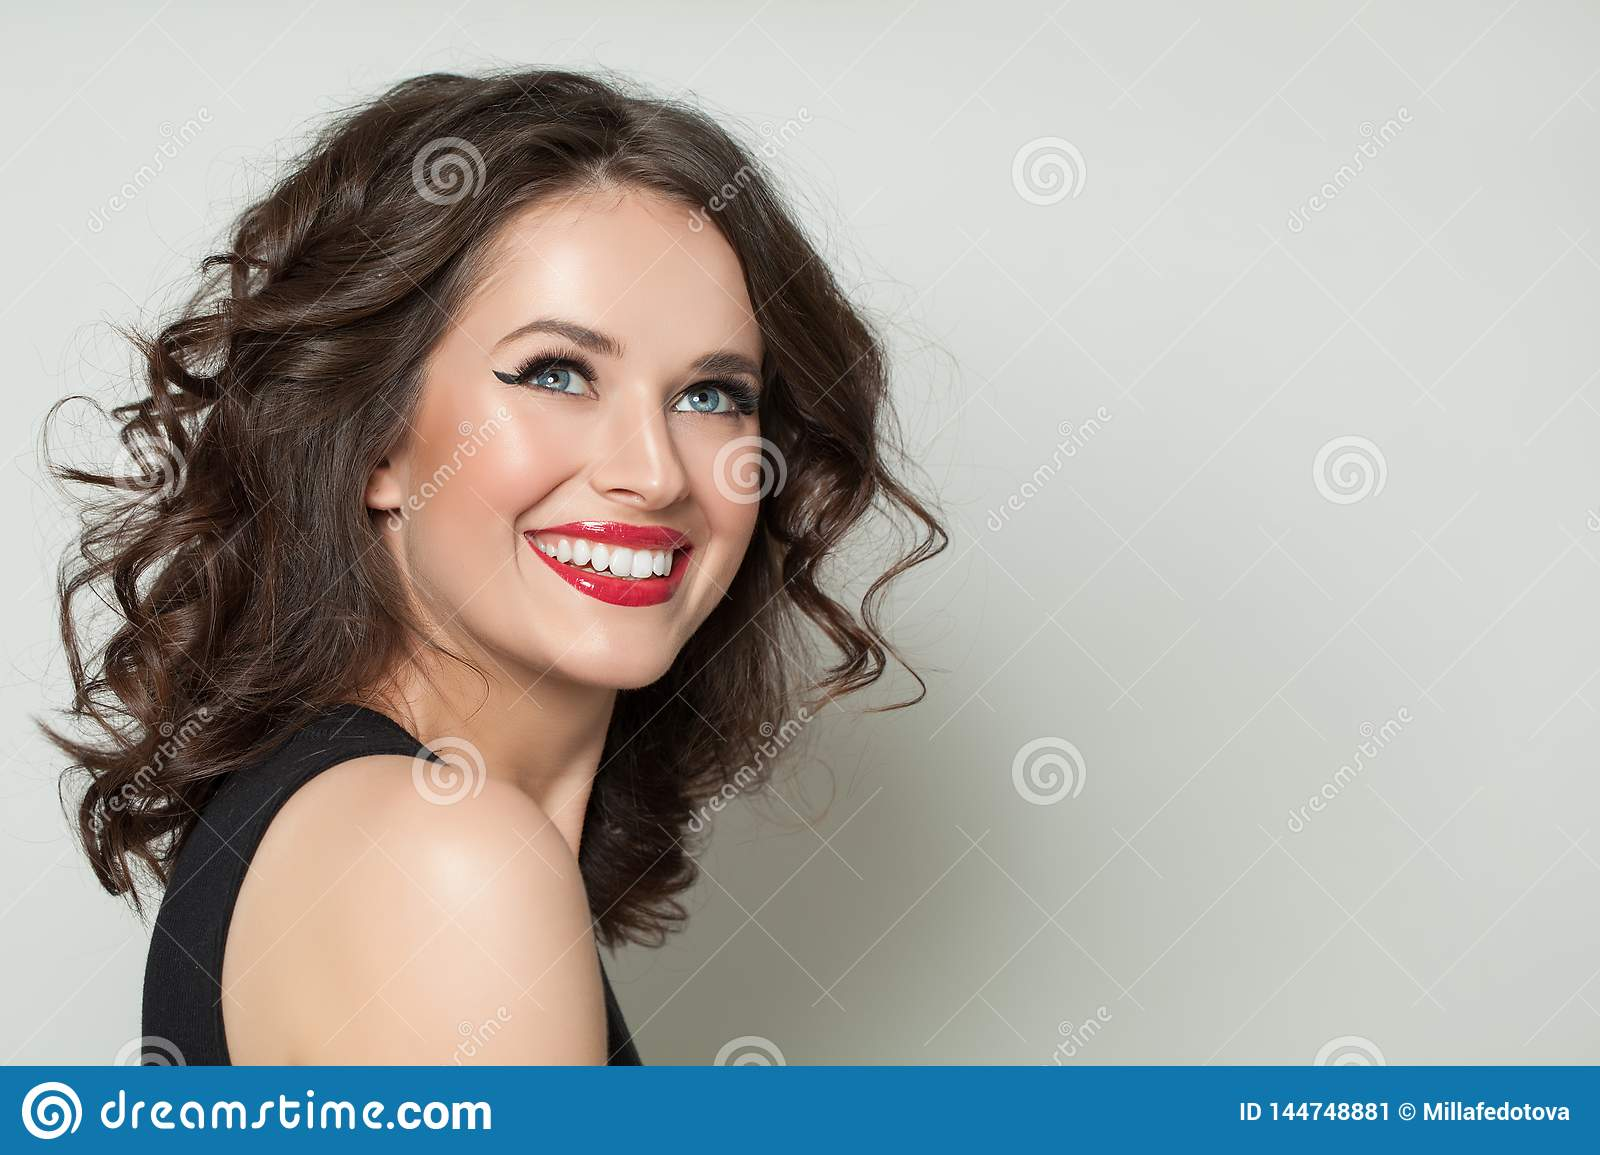 Laughing model woman with makeup and healthy curly hair on white background